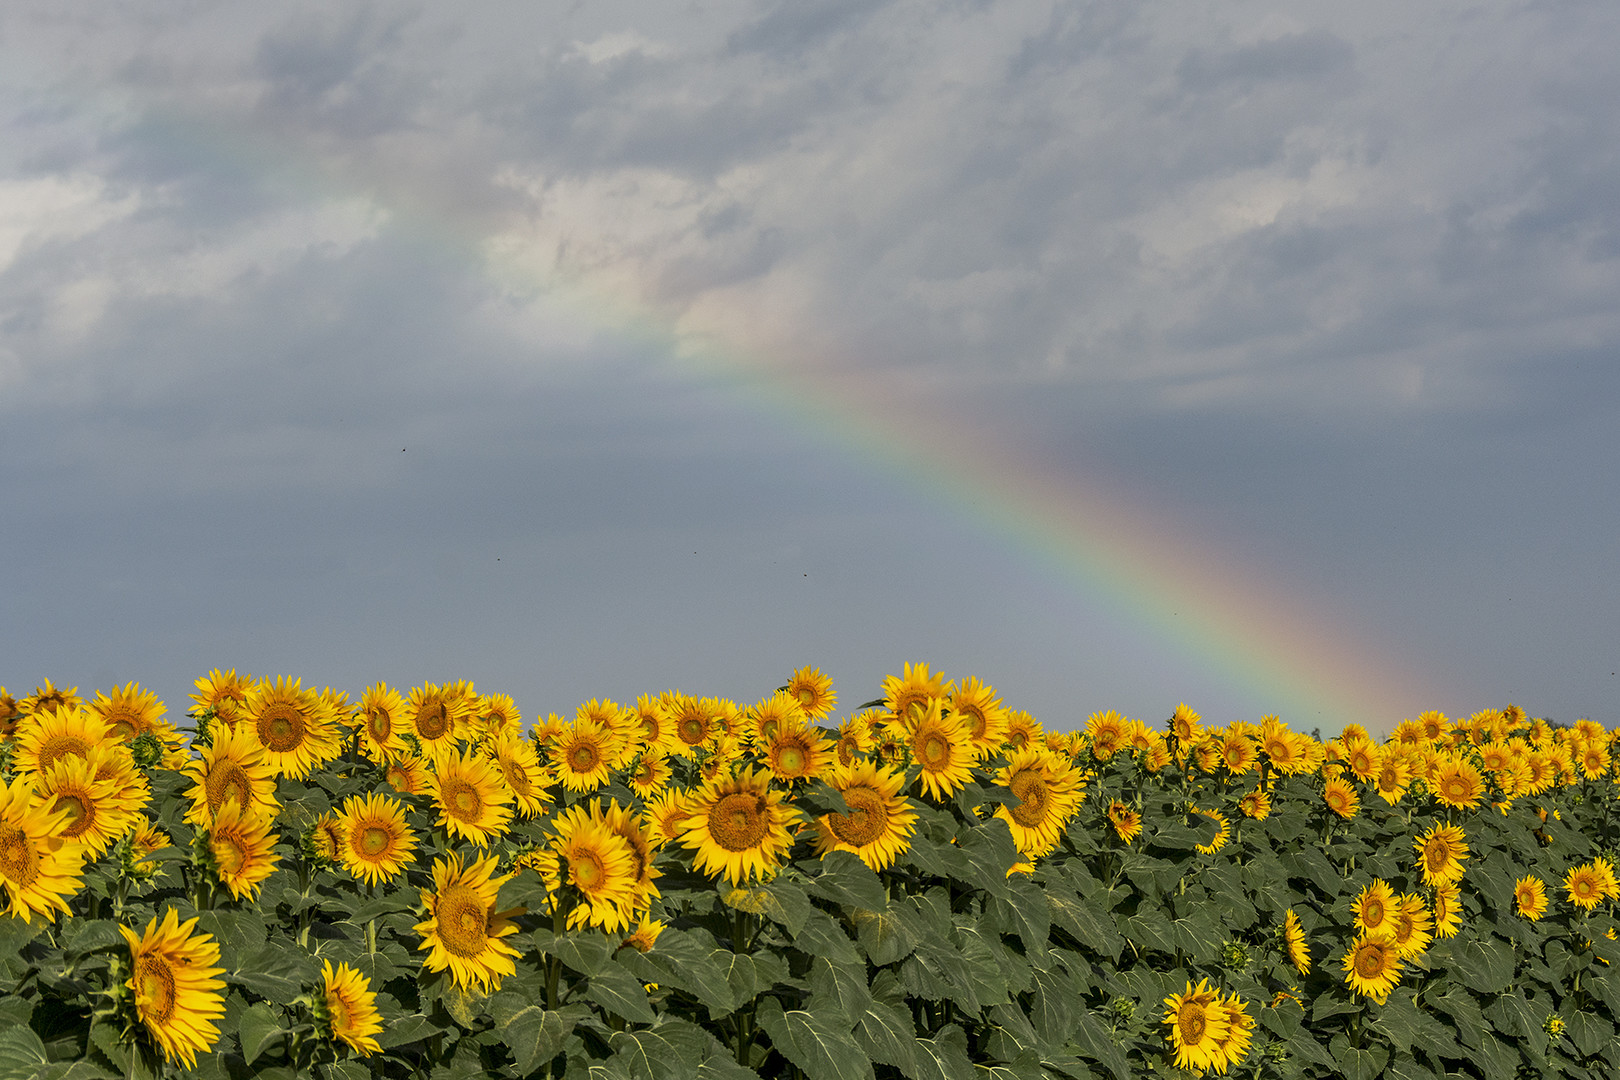 Raimbow over sunflowers